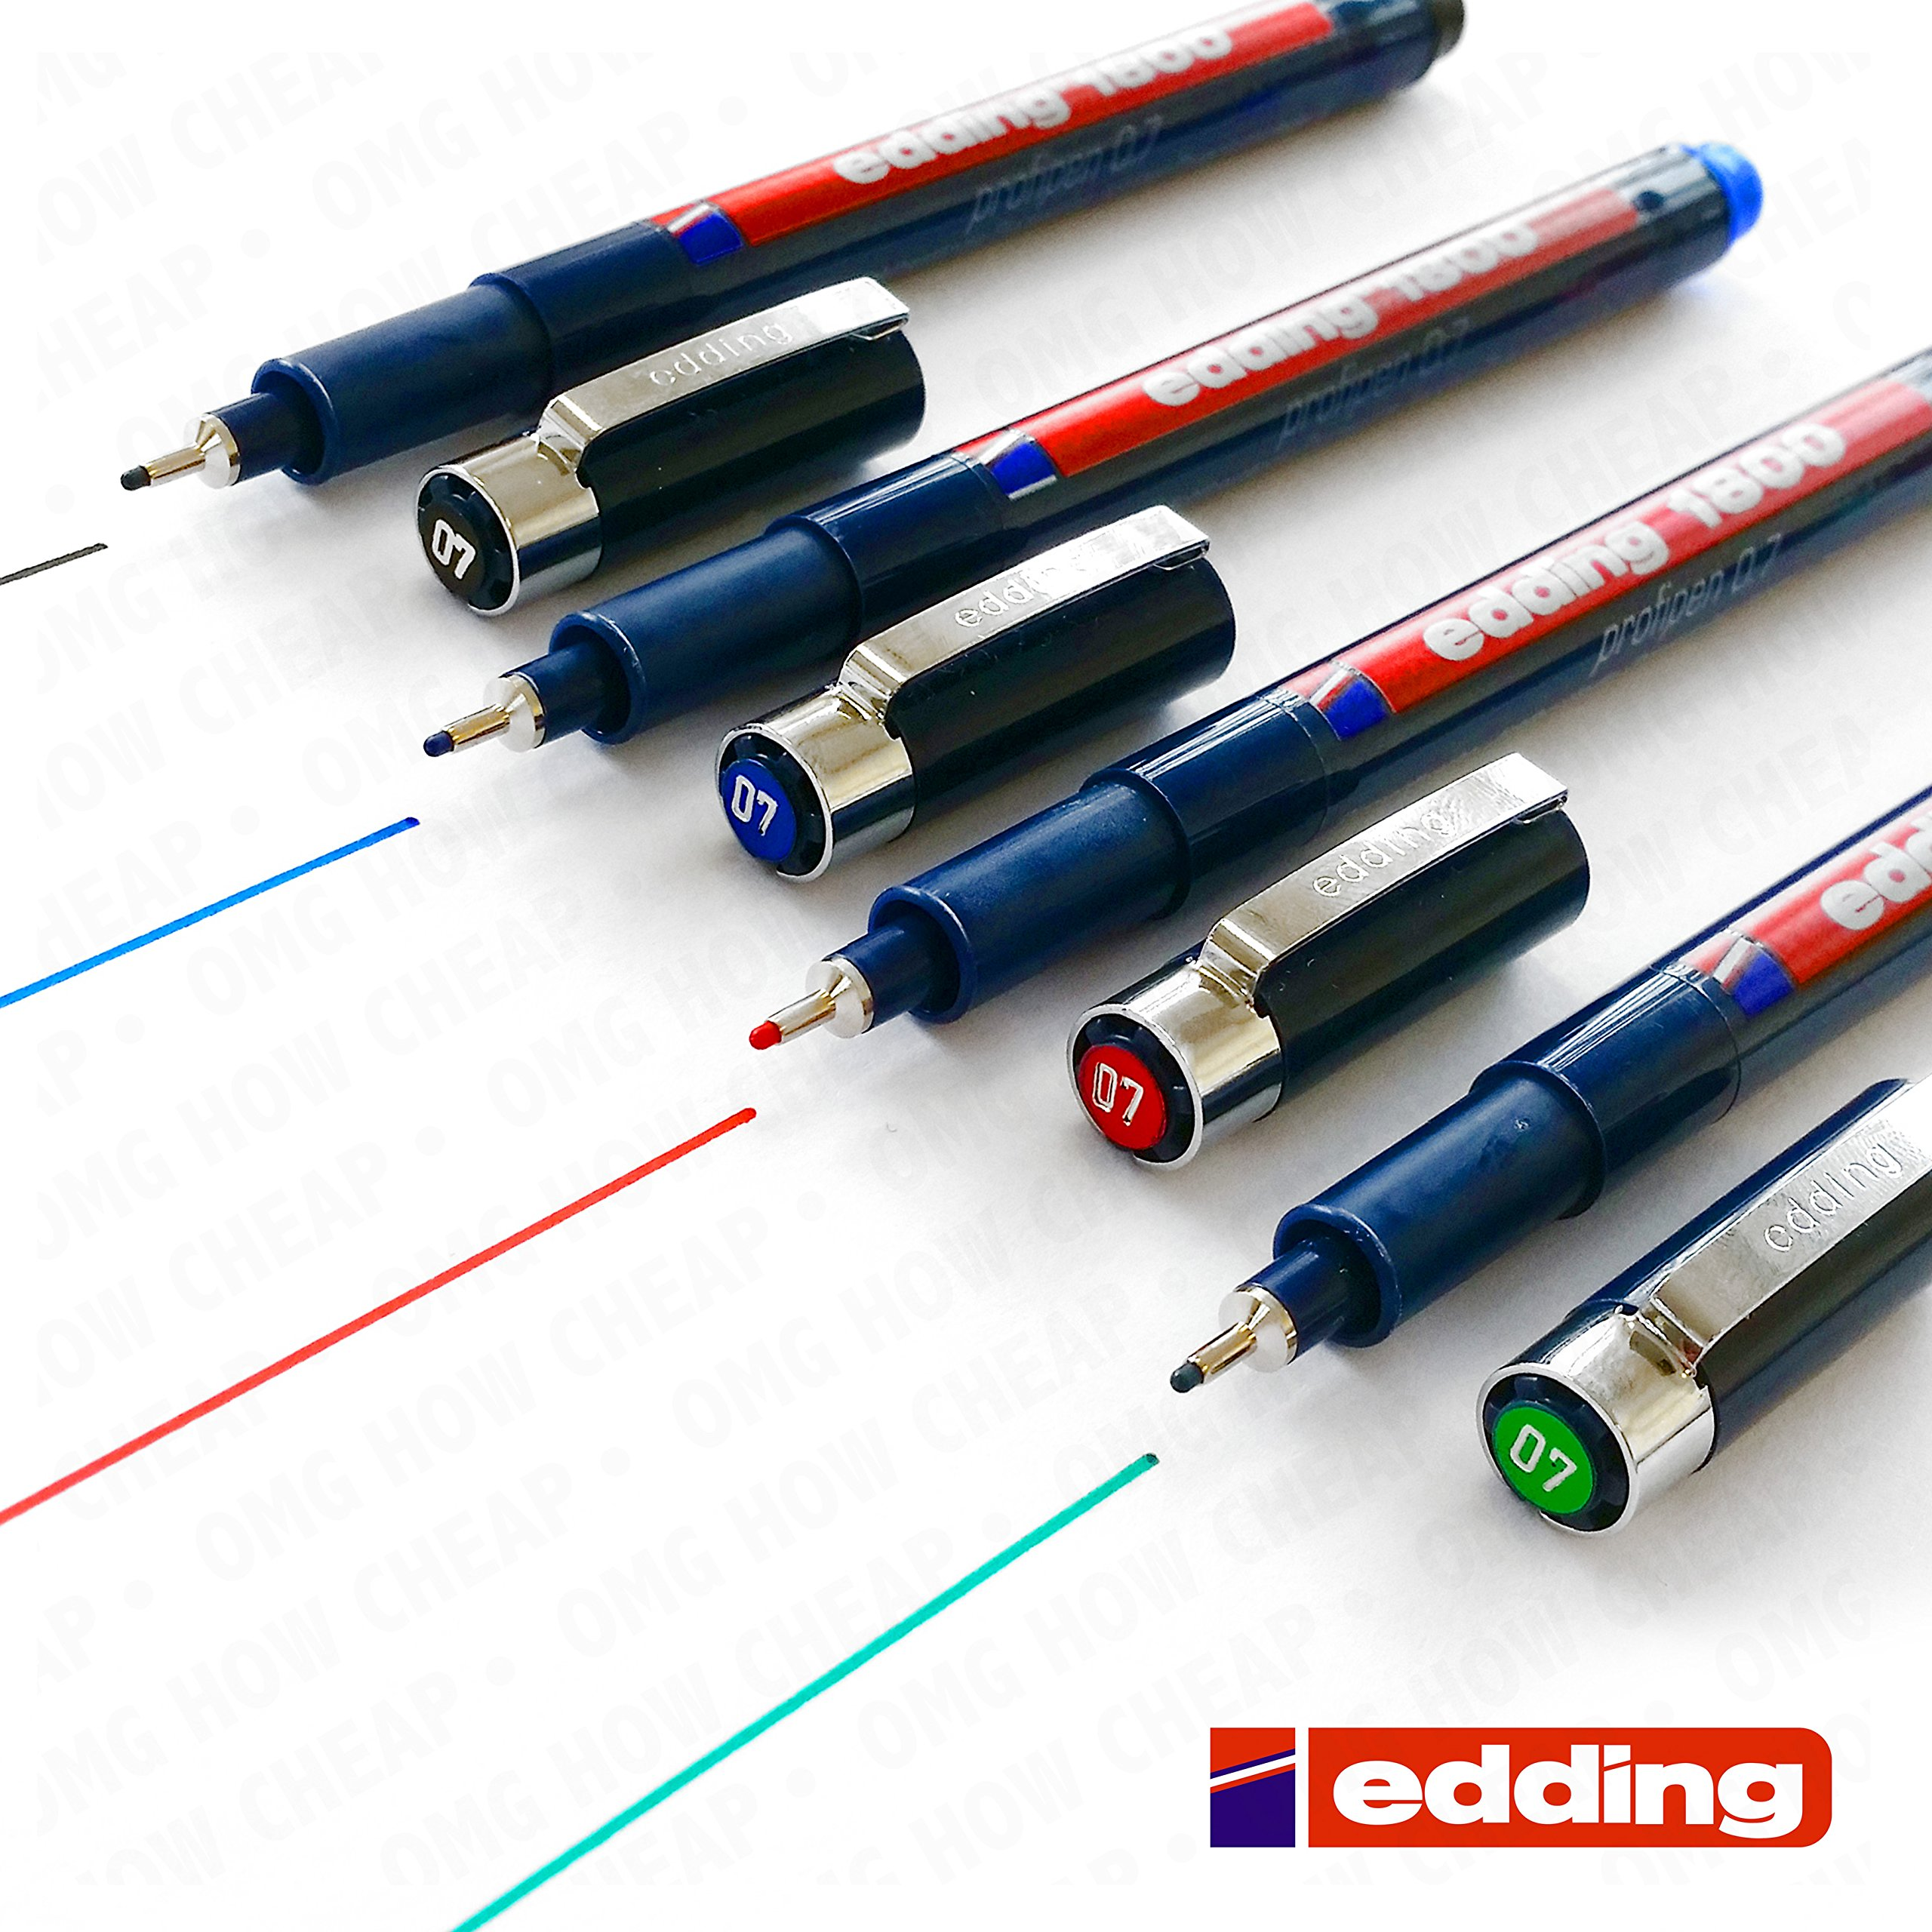 Edding 1800 Profipen Pigment Liner Drawing Pen - 0.7mm - [Set of 4 - Black, Blue, Red, and Green]